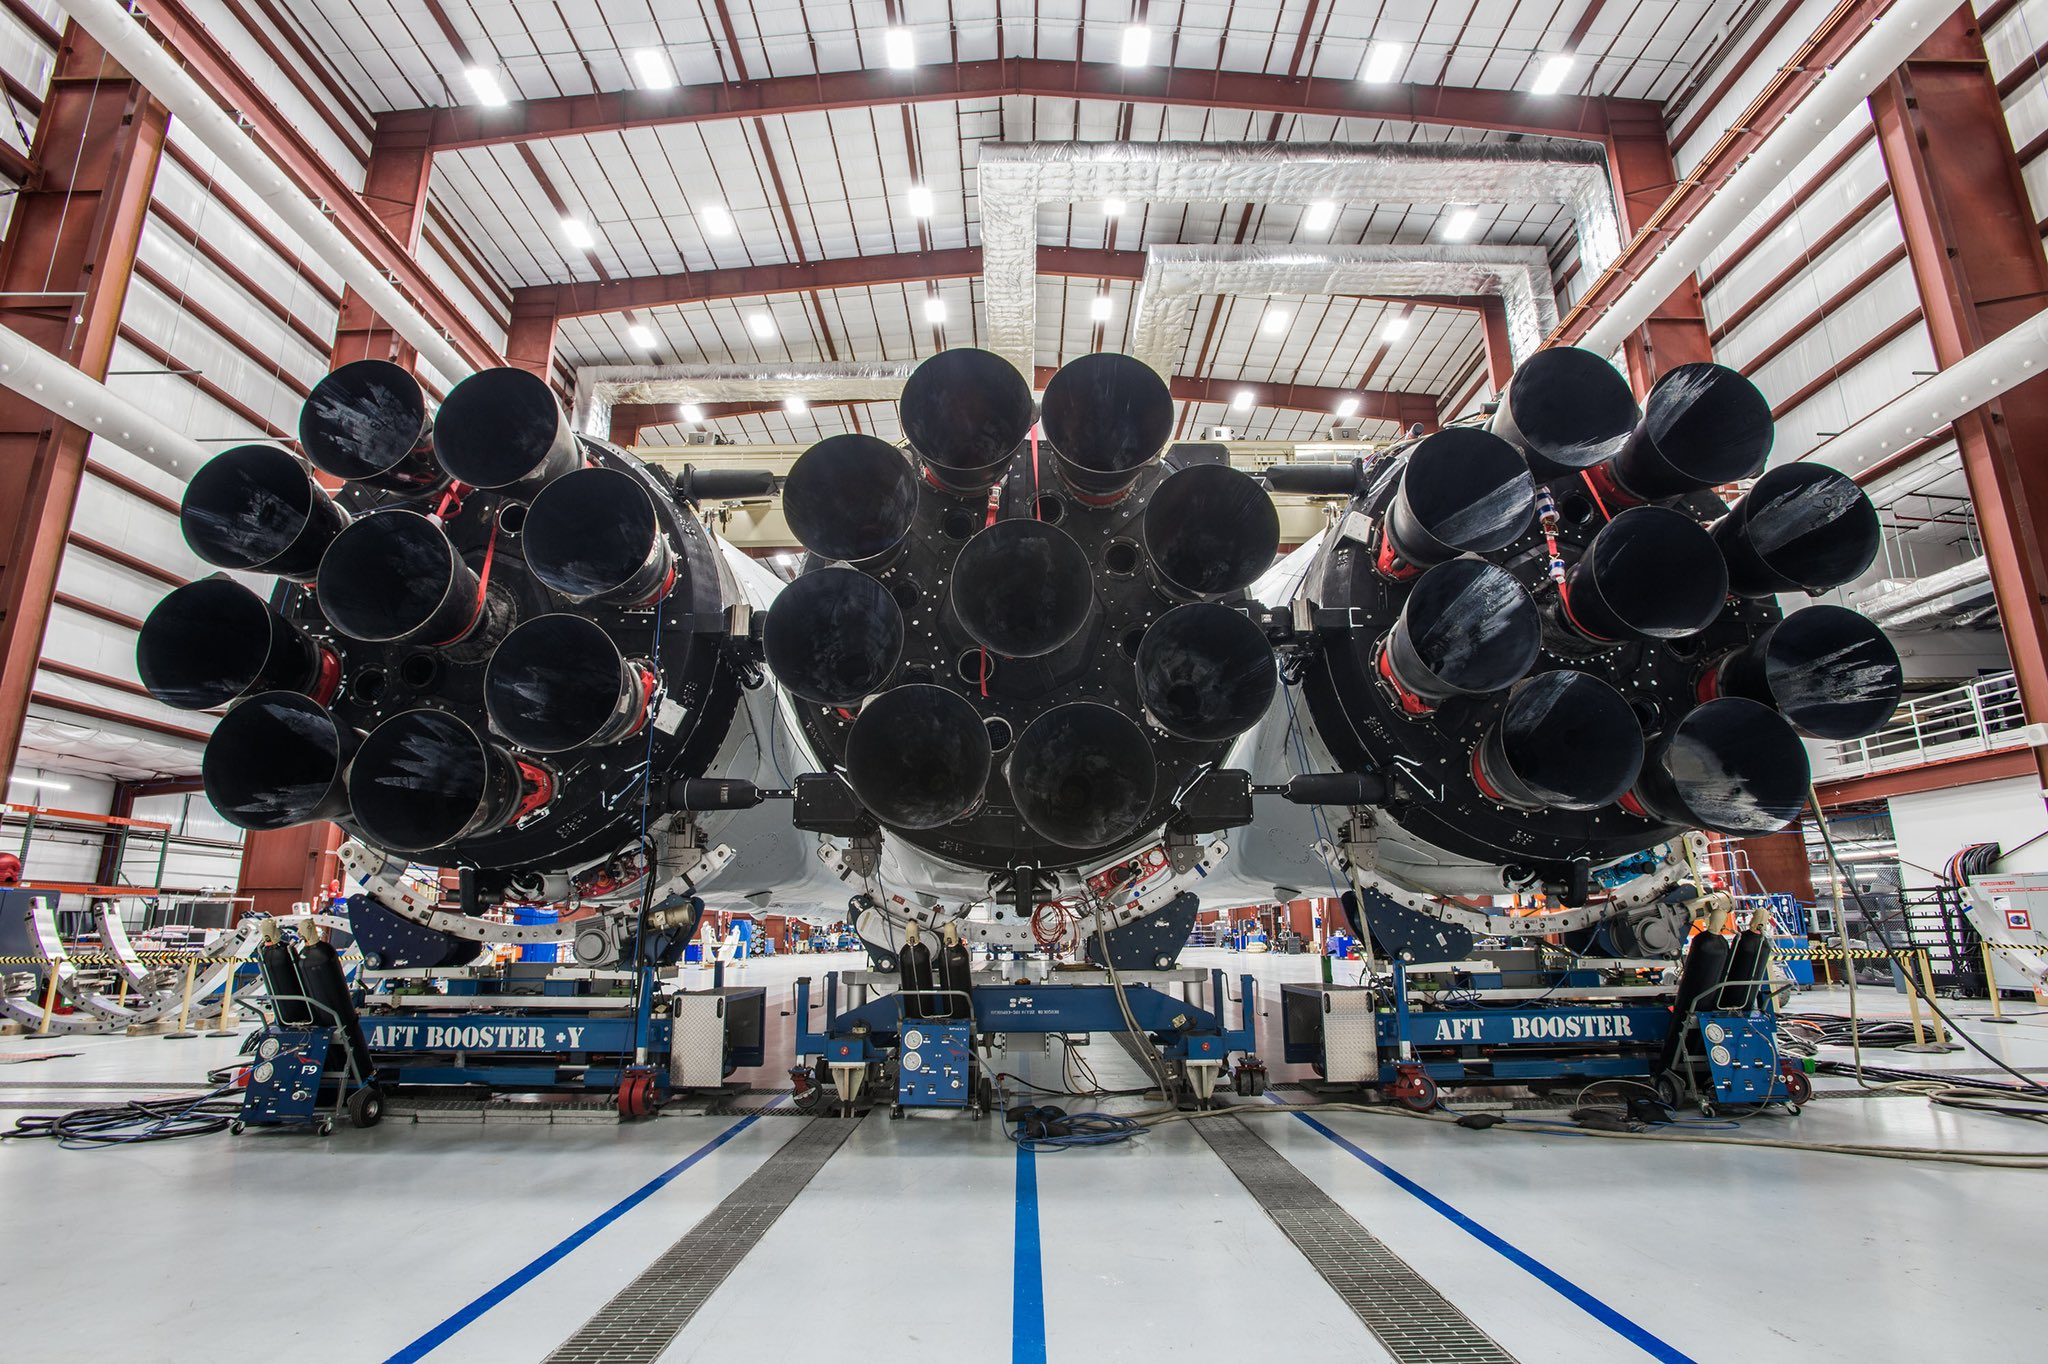 Falcon Heavy's 27 engines on display at 39A. The white material on the left and right engines are indicative of flight-proven boosters. (SpaceX)